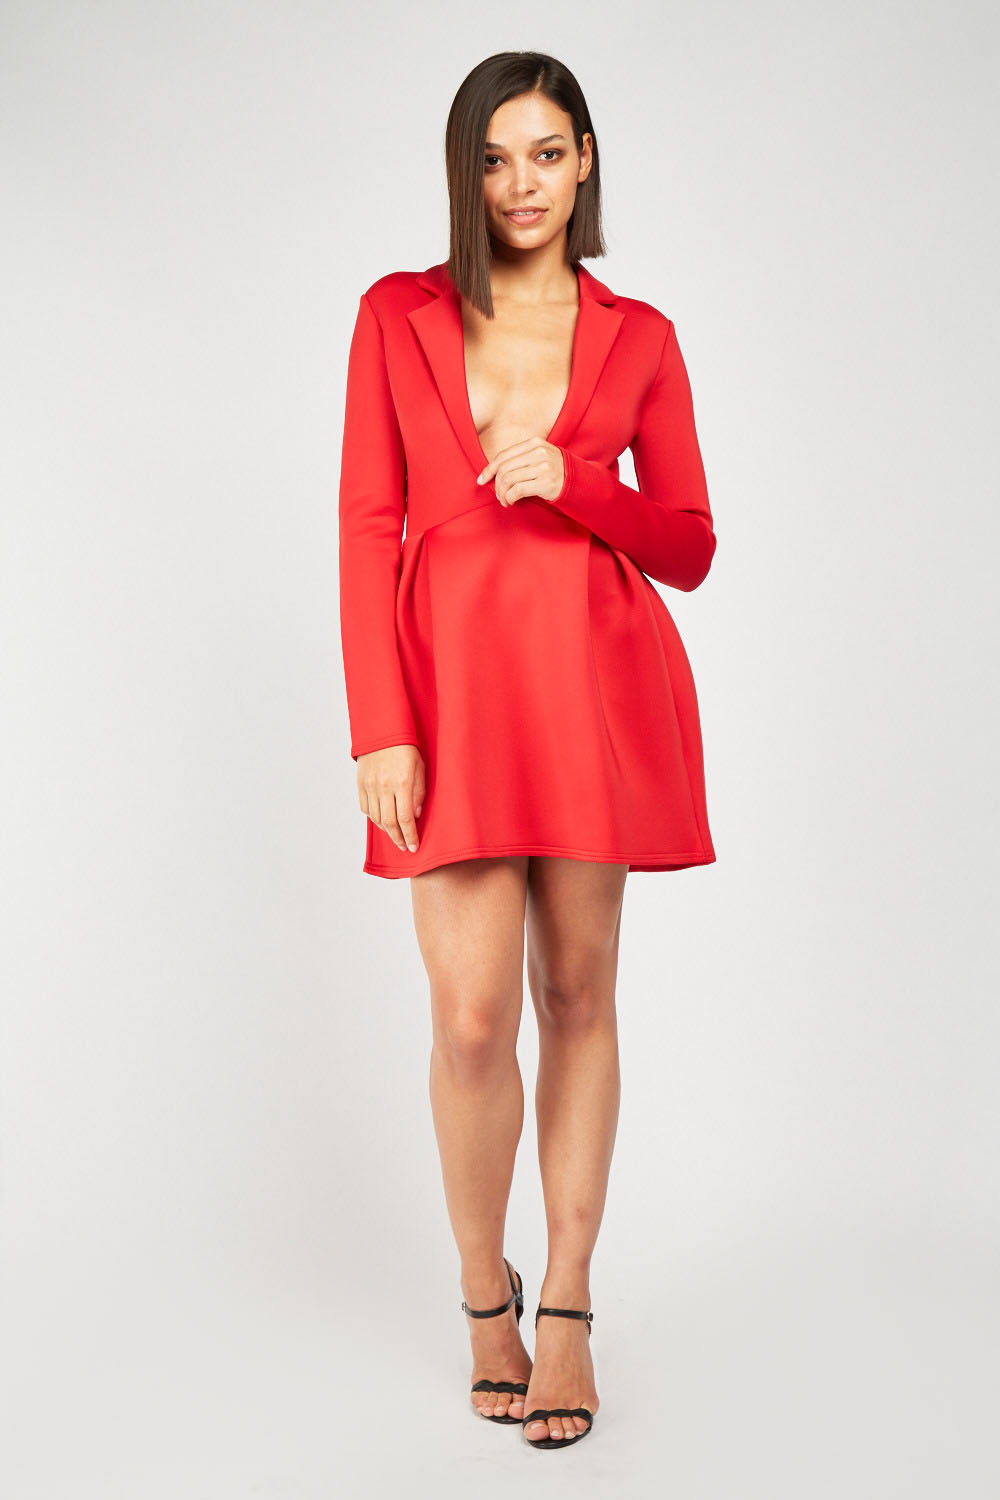 2fafdb1f57a9 Low Plunge Mini Scuba Dress - Red or White - Just £5